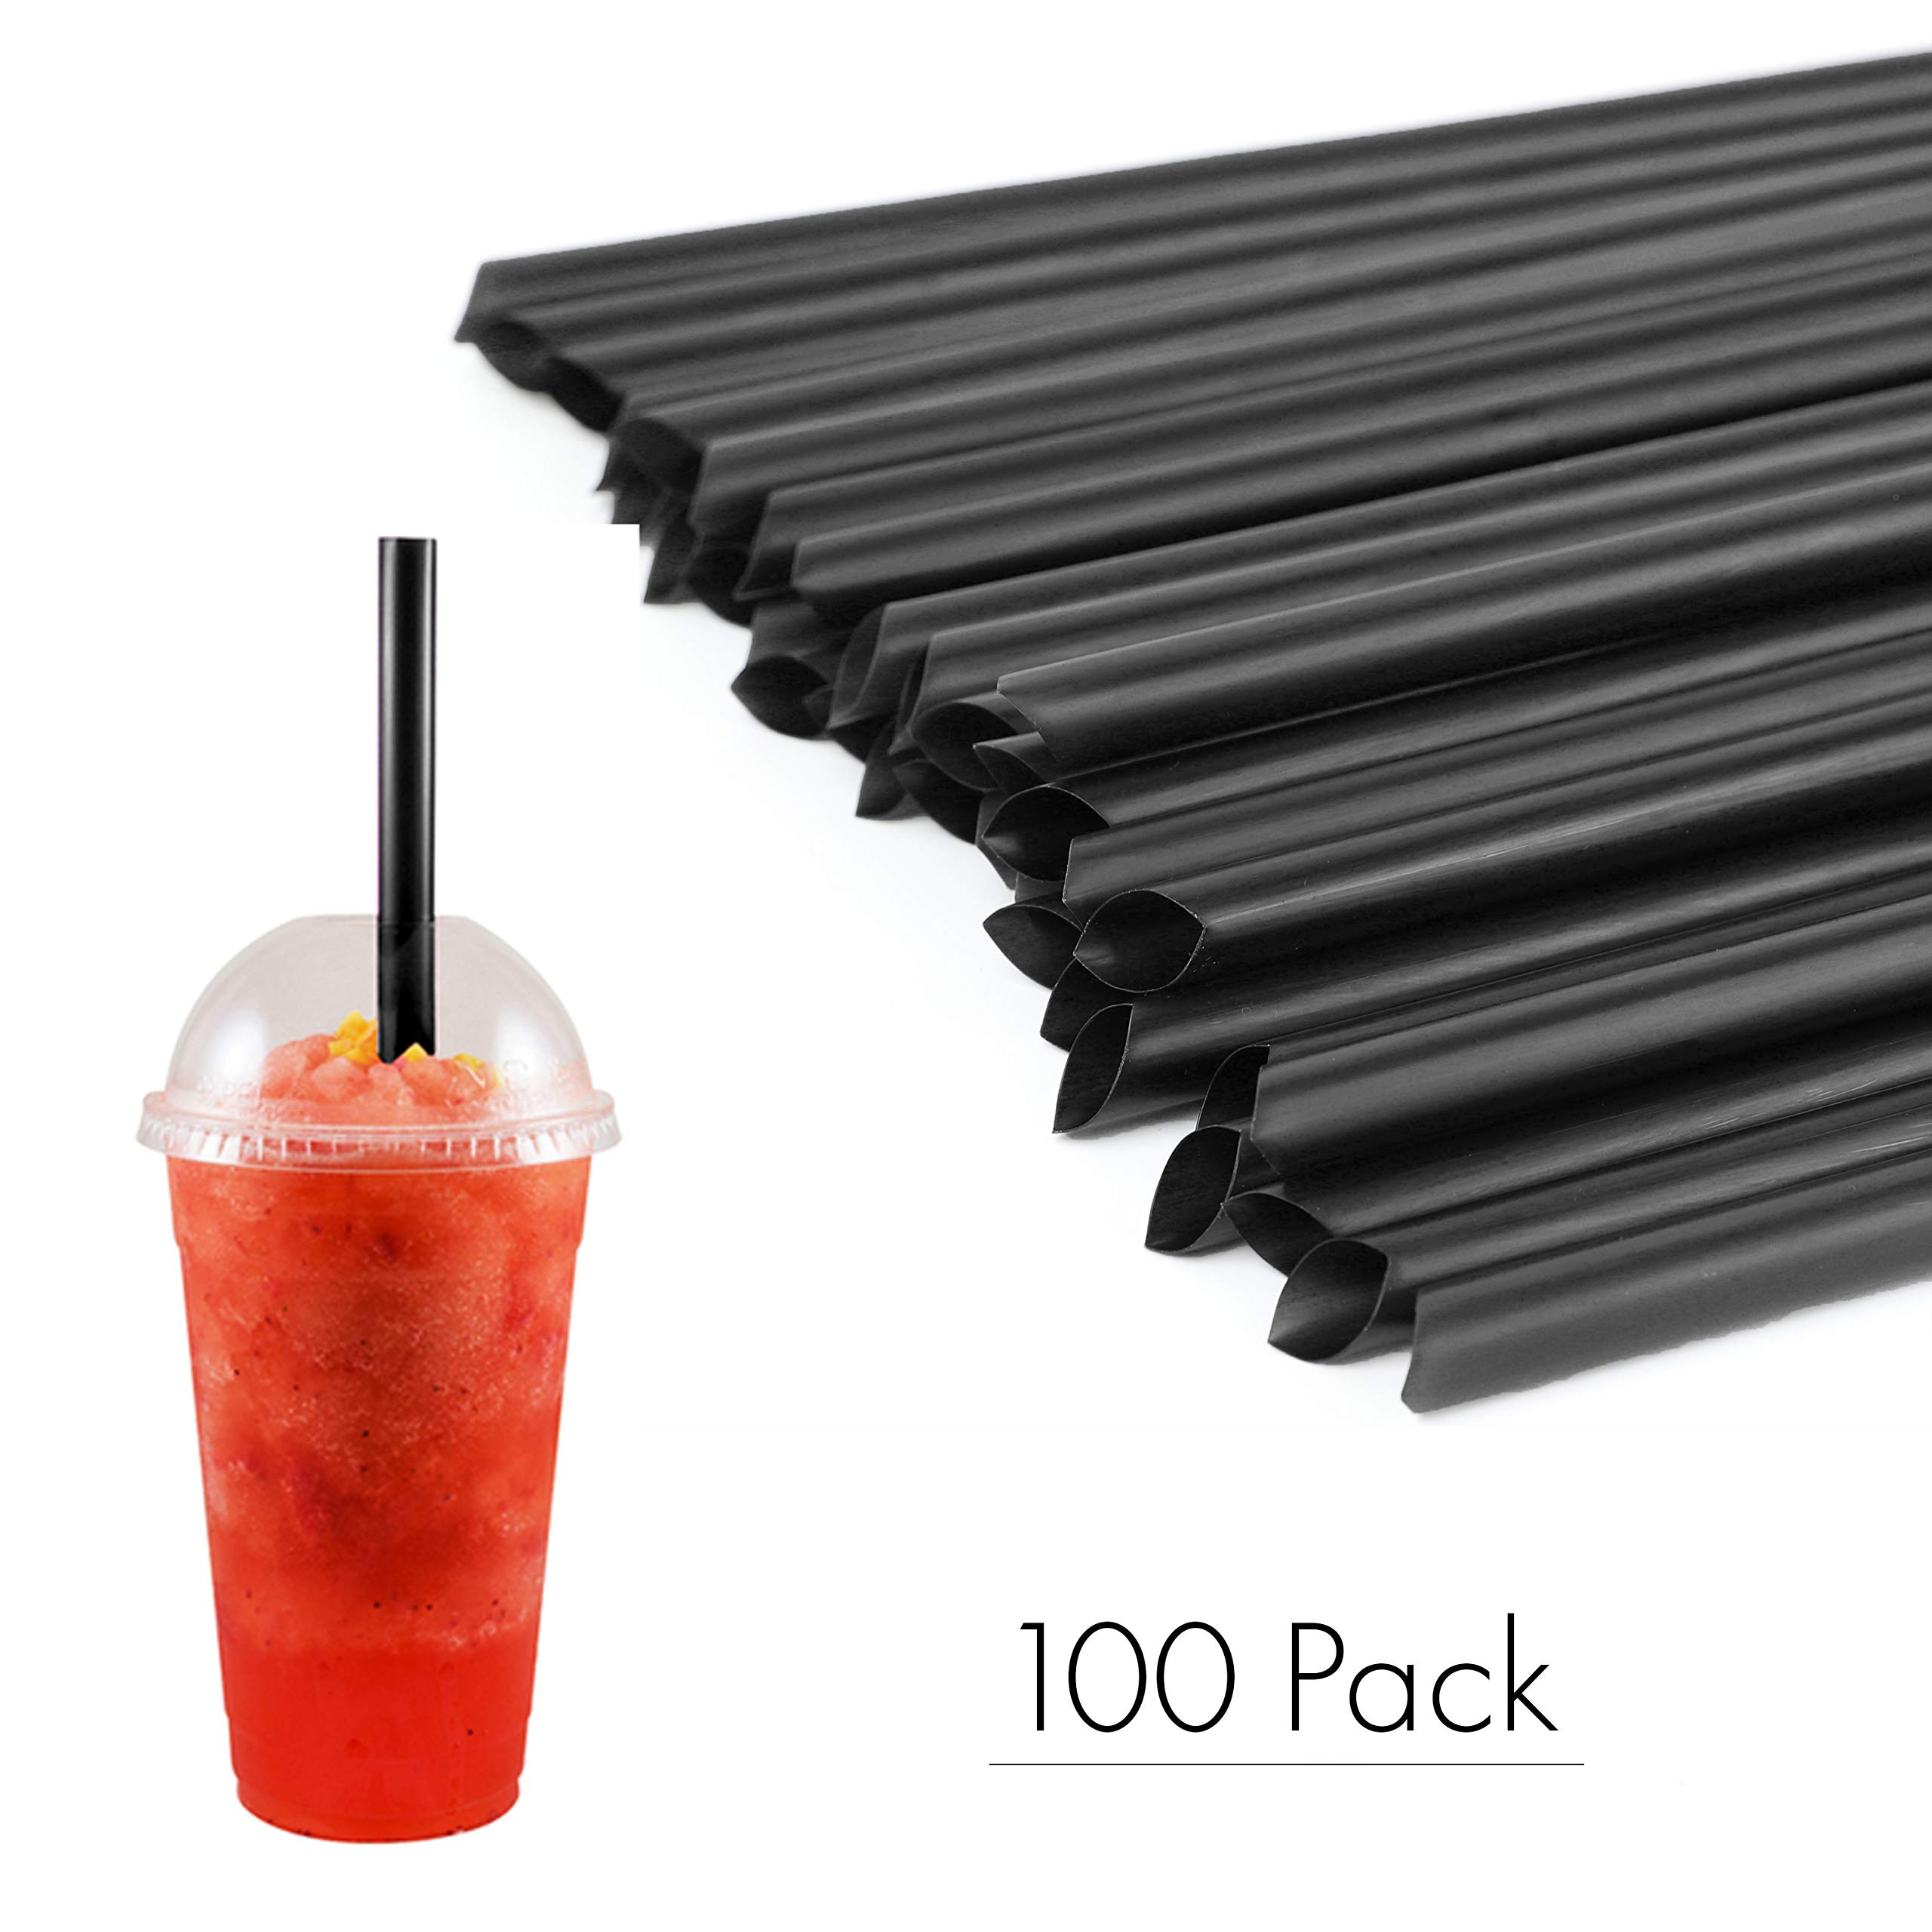 """Houseables Milkshake Straws, Large Straw, 10.5"""" Long, 0.5"""" Diameter, 100 Pack, Black, Plastic, Big, Disposable, Jumbo, BPA Free, Extra Wide, for Boba, Shake, Smoothies, Drinking, Smoothie Container"""